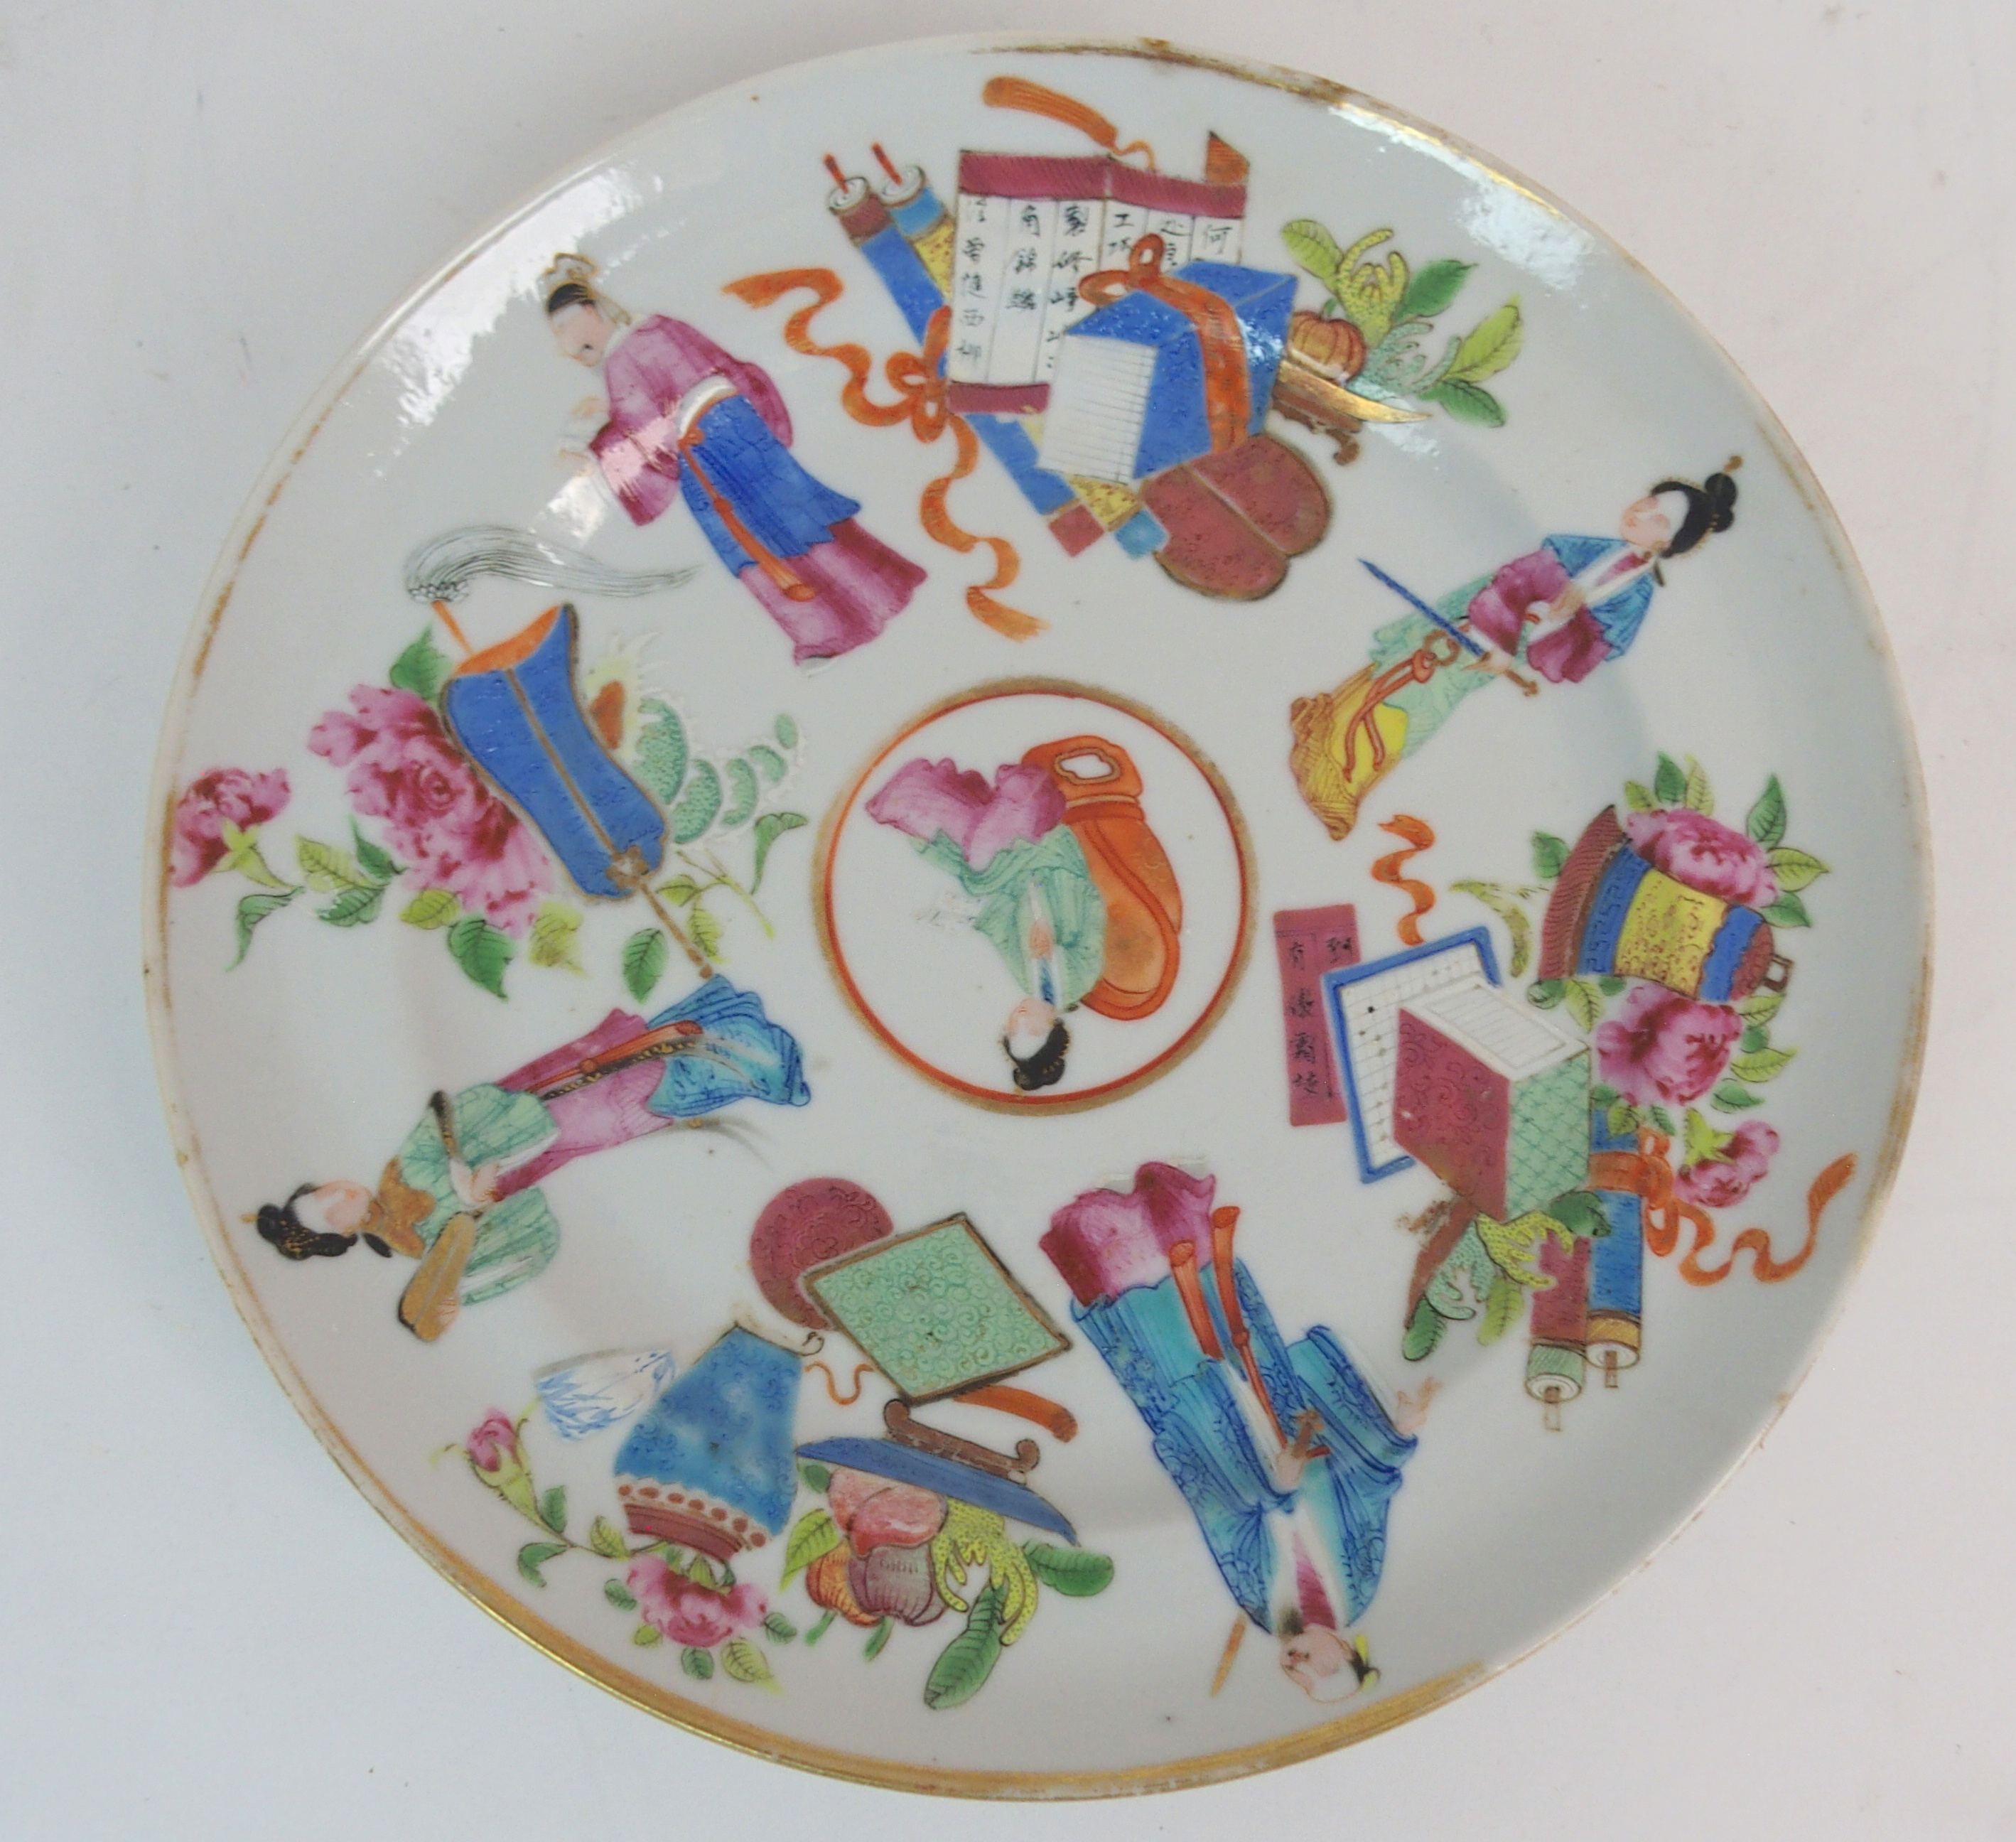 FIVE CHINESE EXPORT PLATES comprising; floral sprays, 22.5cm, Canton figures and precious objects, - Image 4 of 11